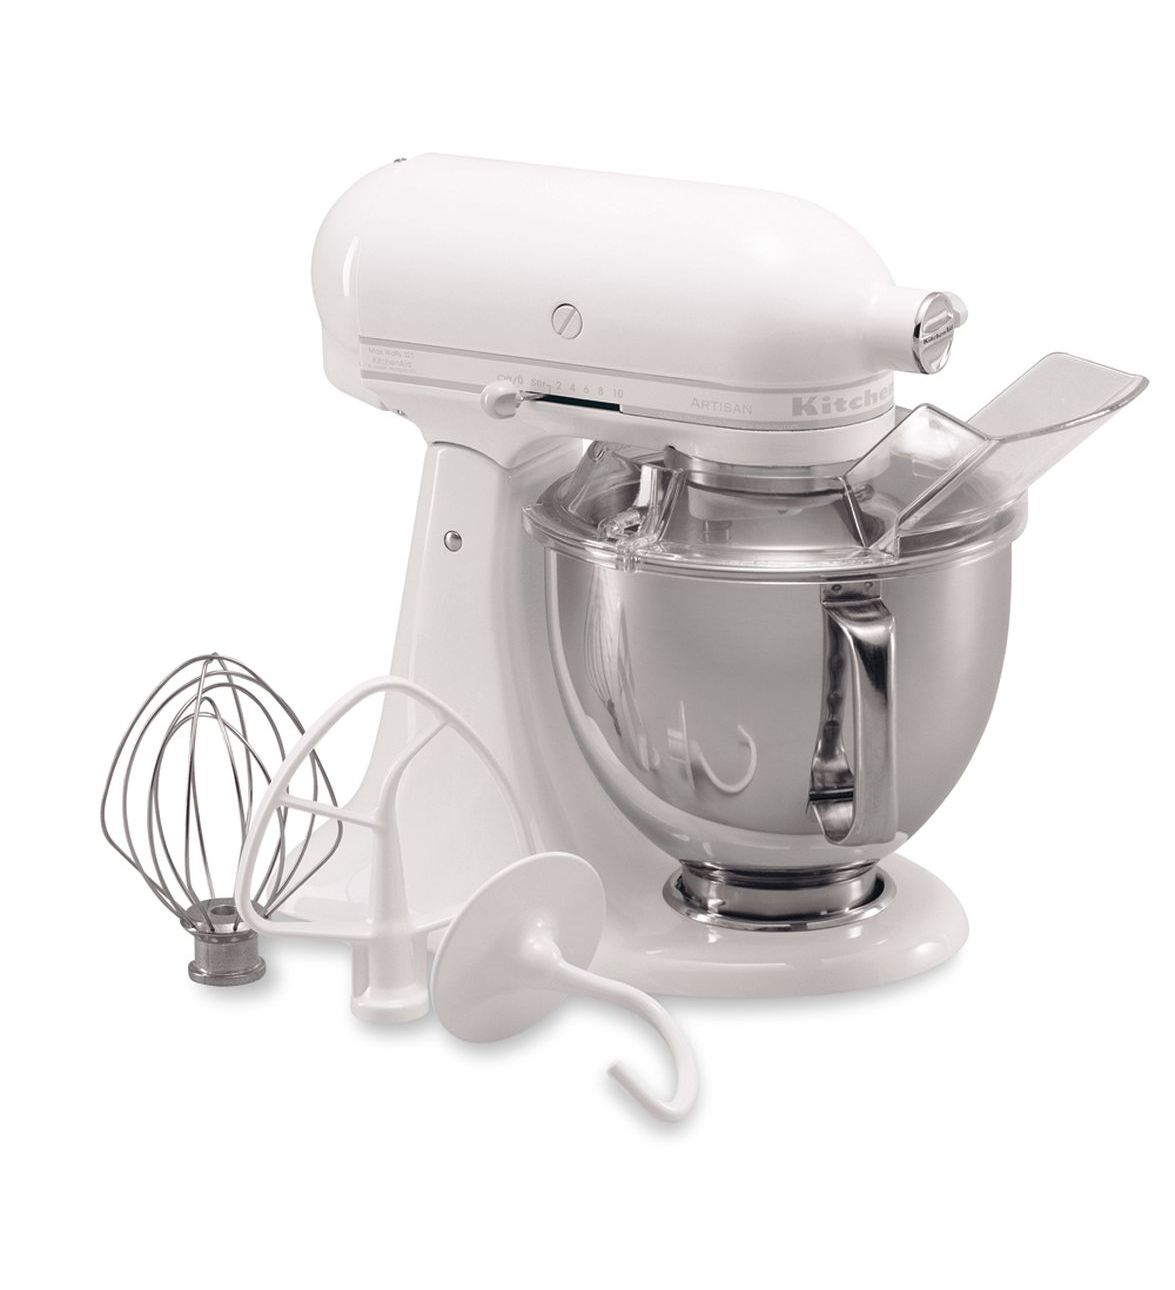 KitchenAid® Refurbished Artisan® Series 5 Quart Tilt-Head Stand Mixer, RRK150 White-on-White